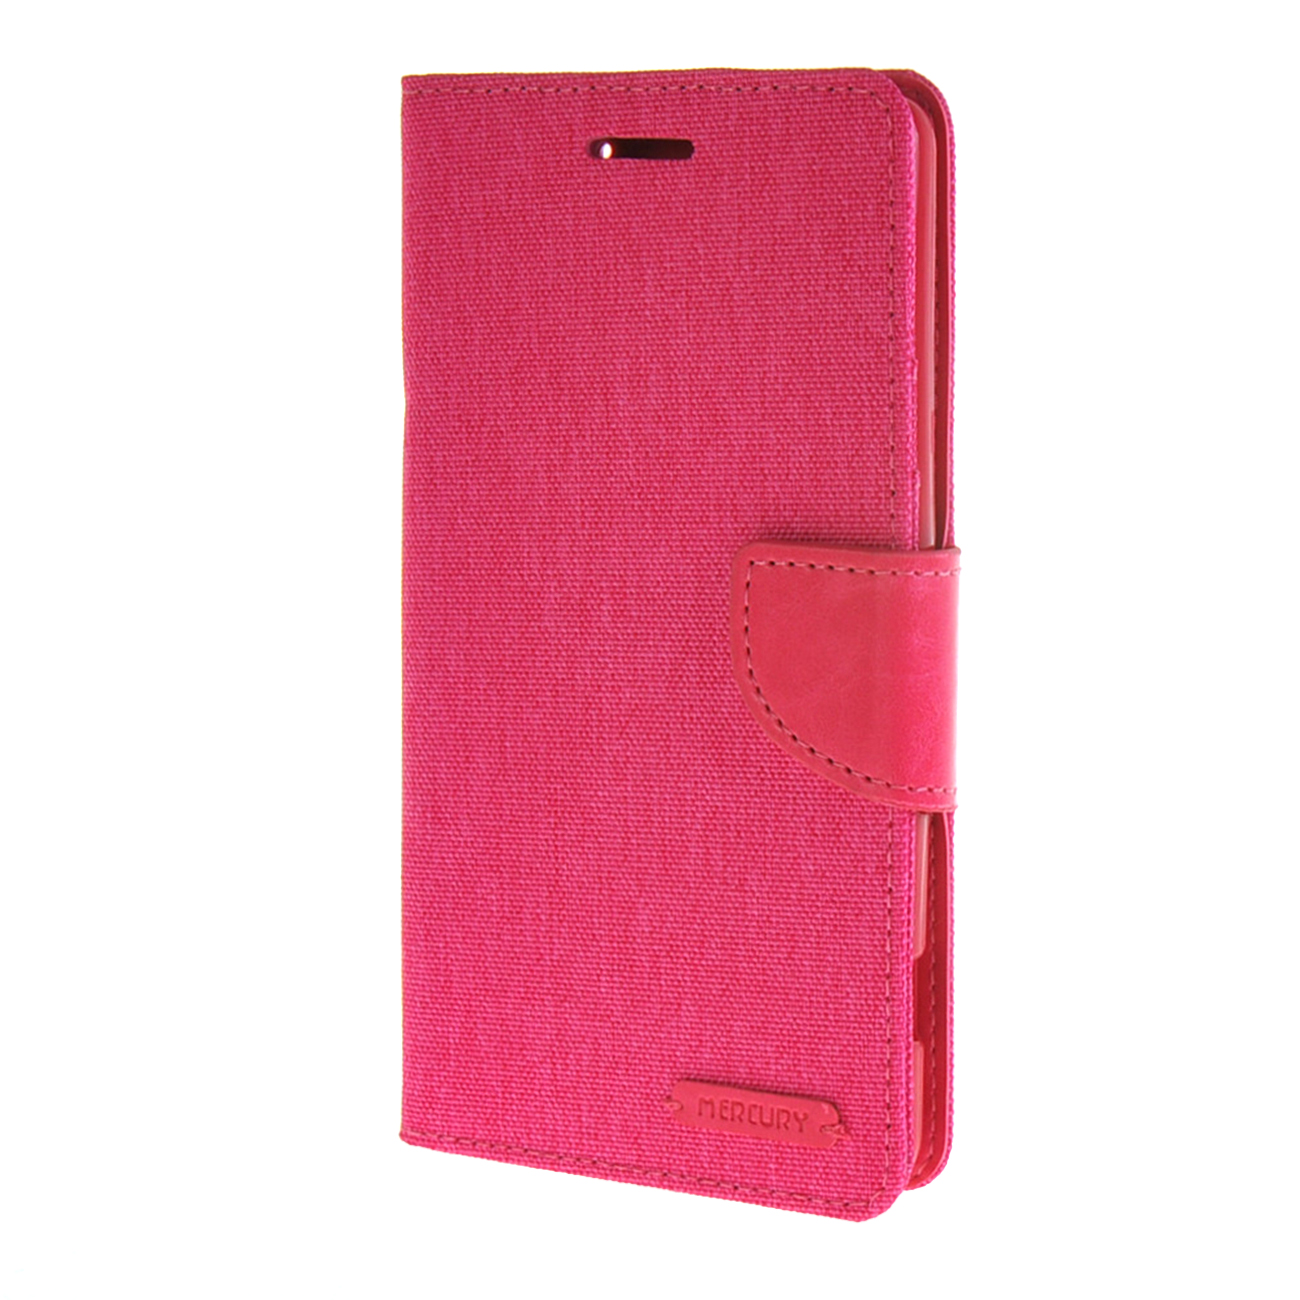 MOONCASE mooncase чехол для sony xperia m4 rainbow pattern leather flip wallet card holder with kickstand back a05